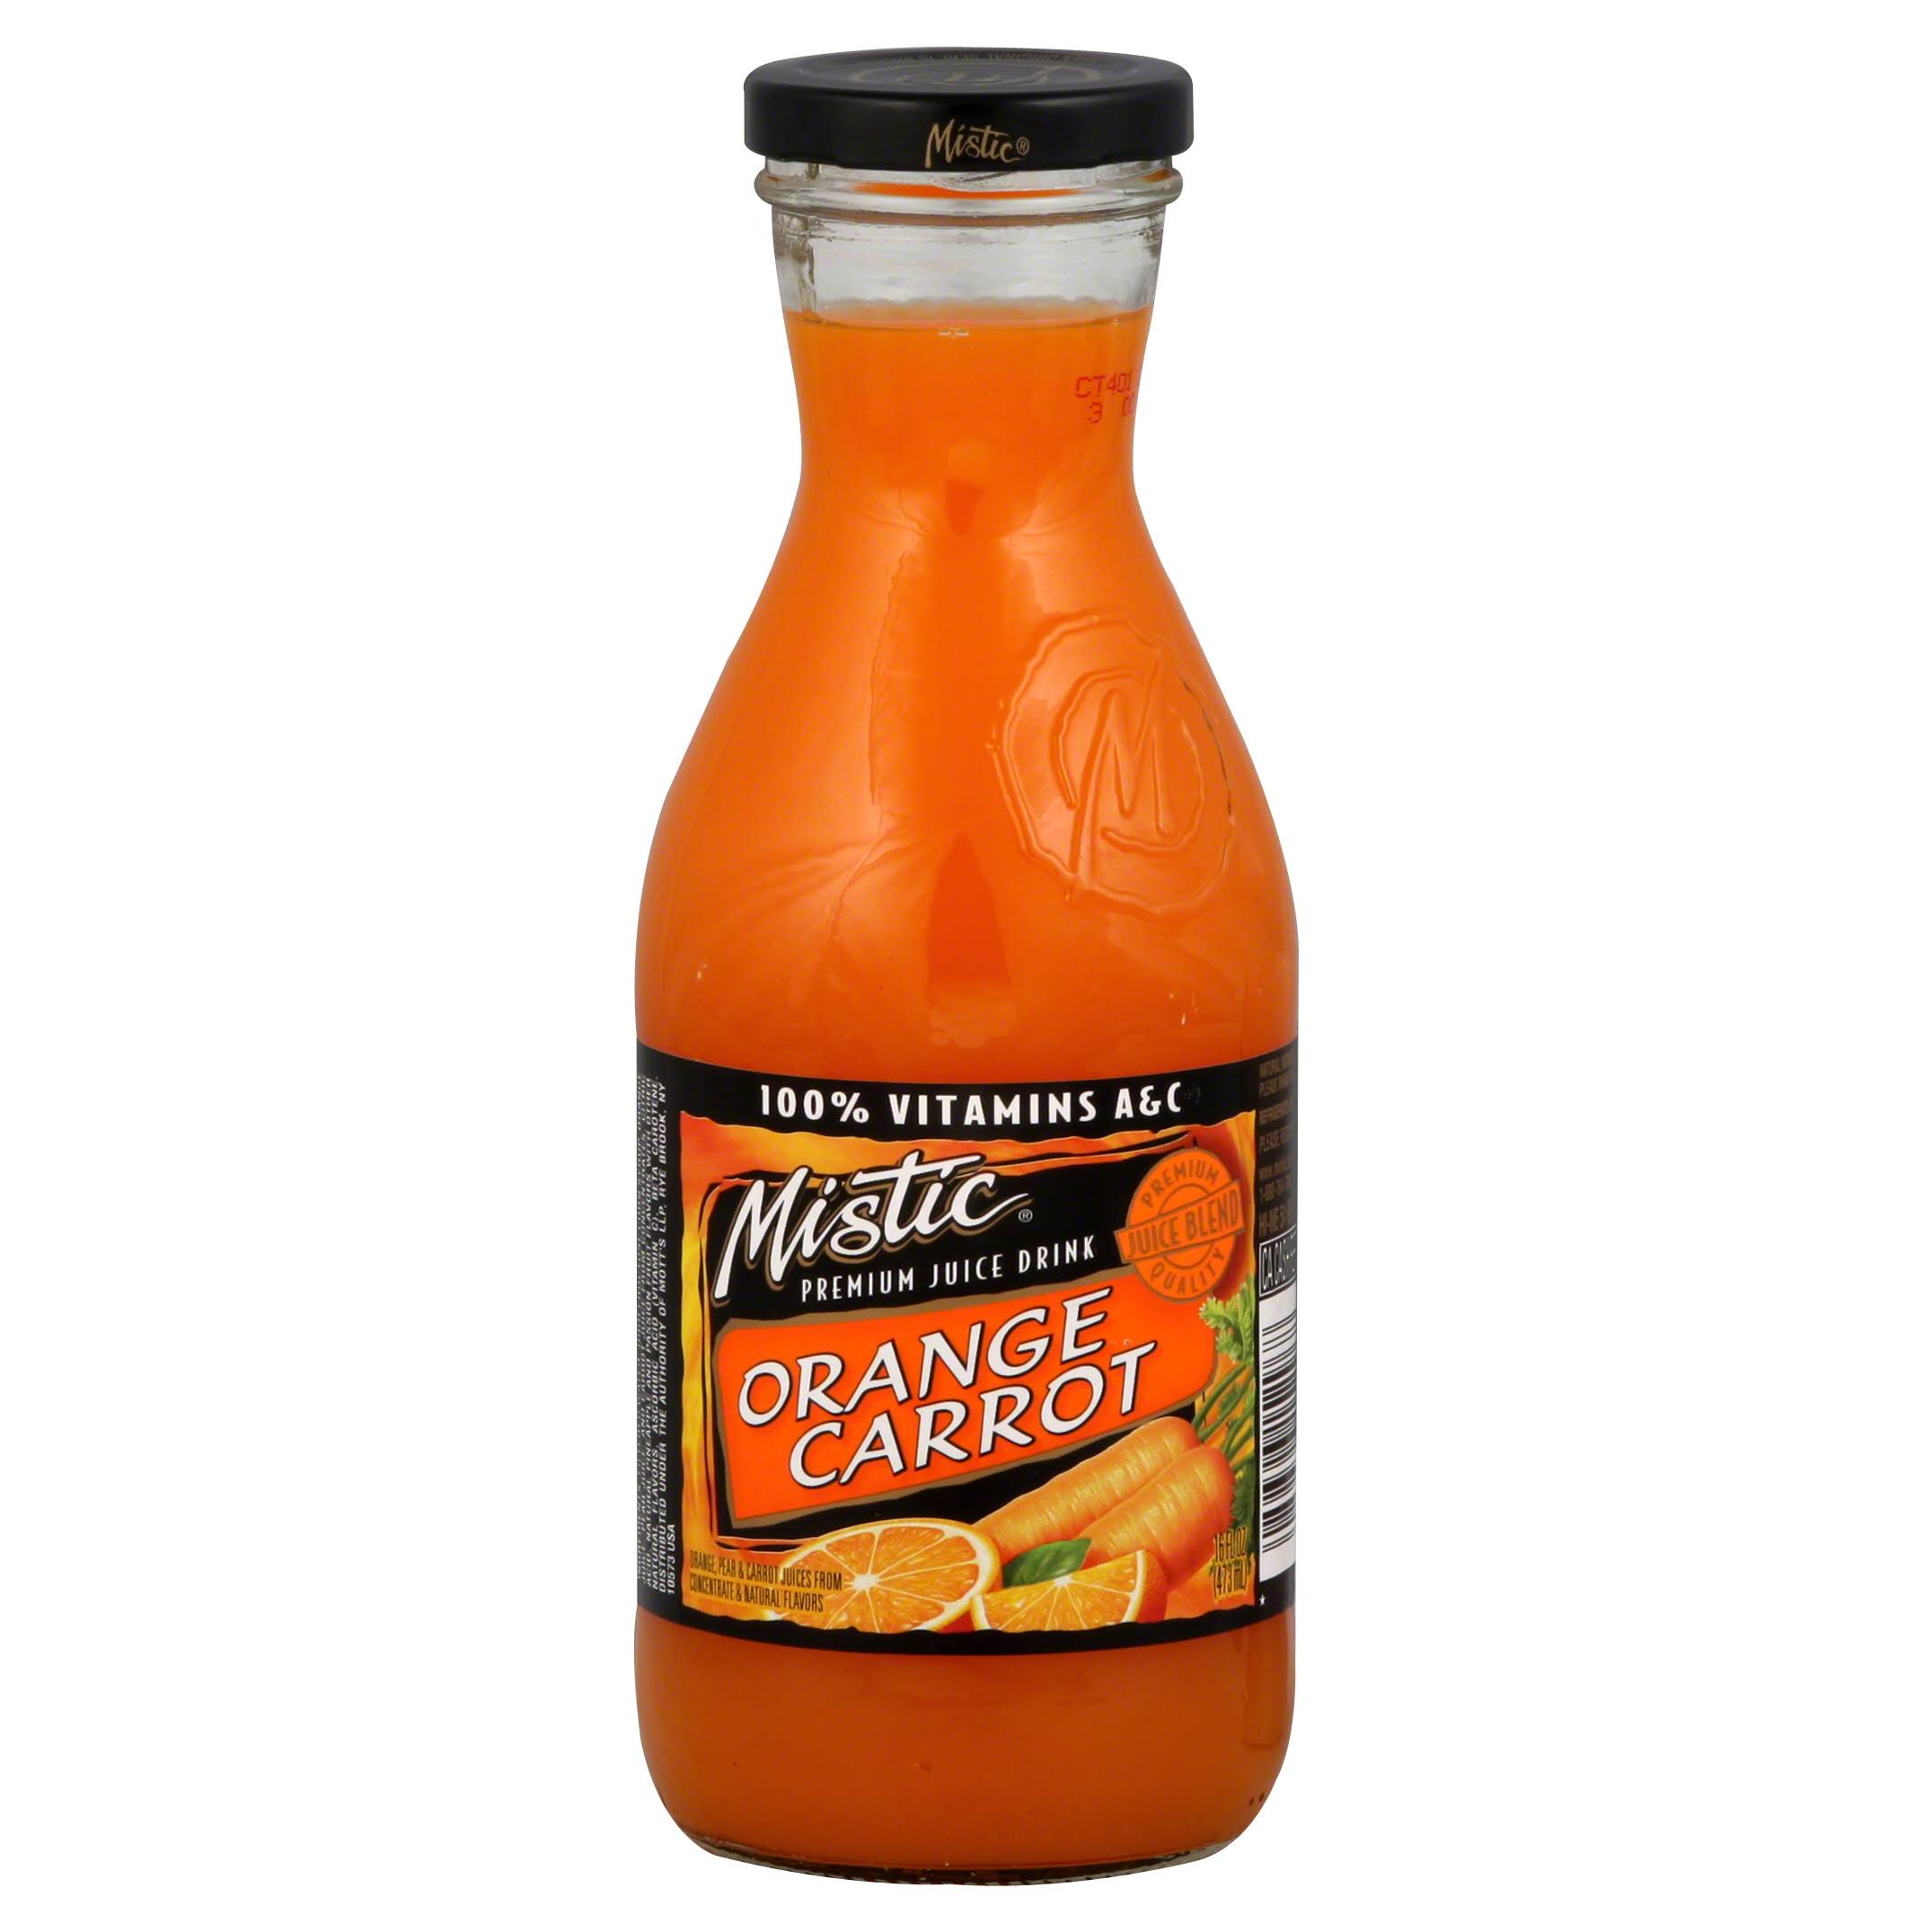 Mistic Juice Drink - Orange Carrot, 16oz